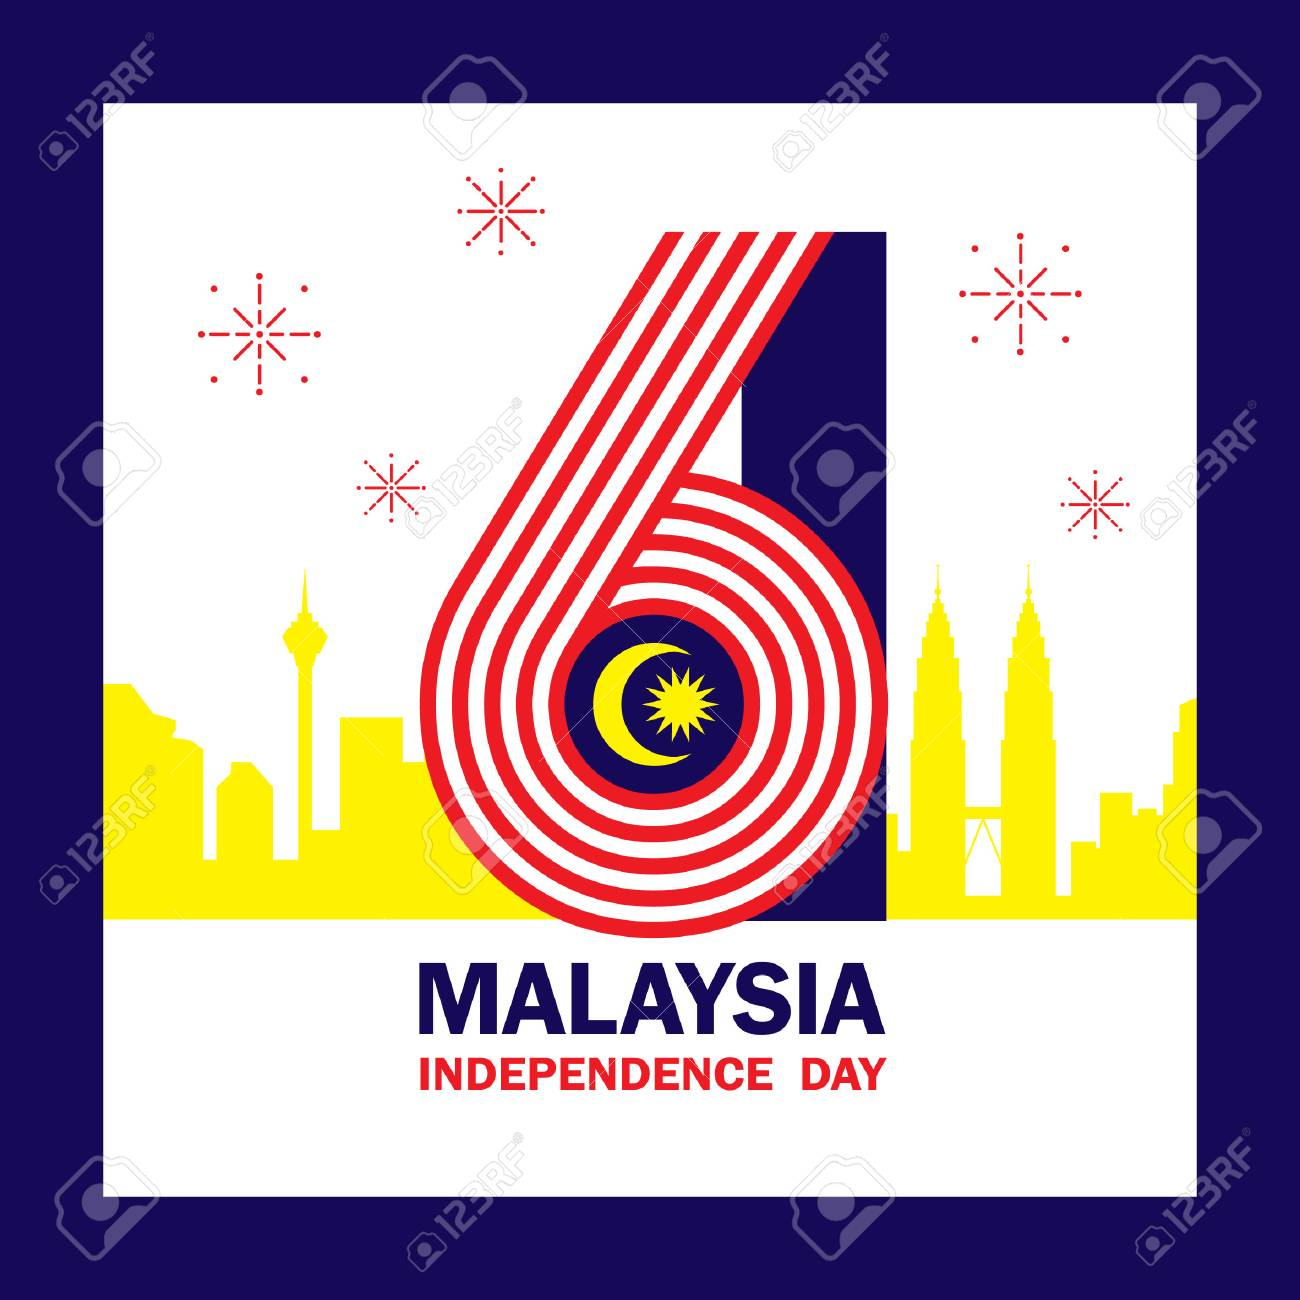 Independence Day.31 August Malaysia Independence Day Illustration With Number